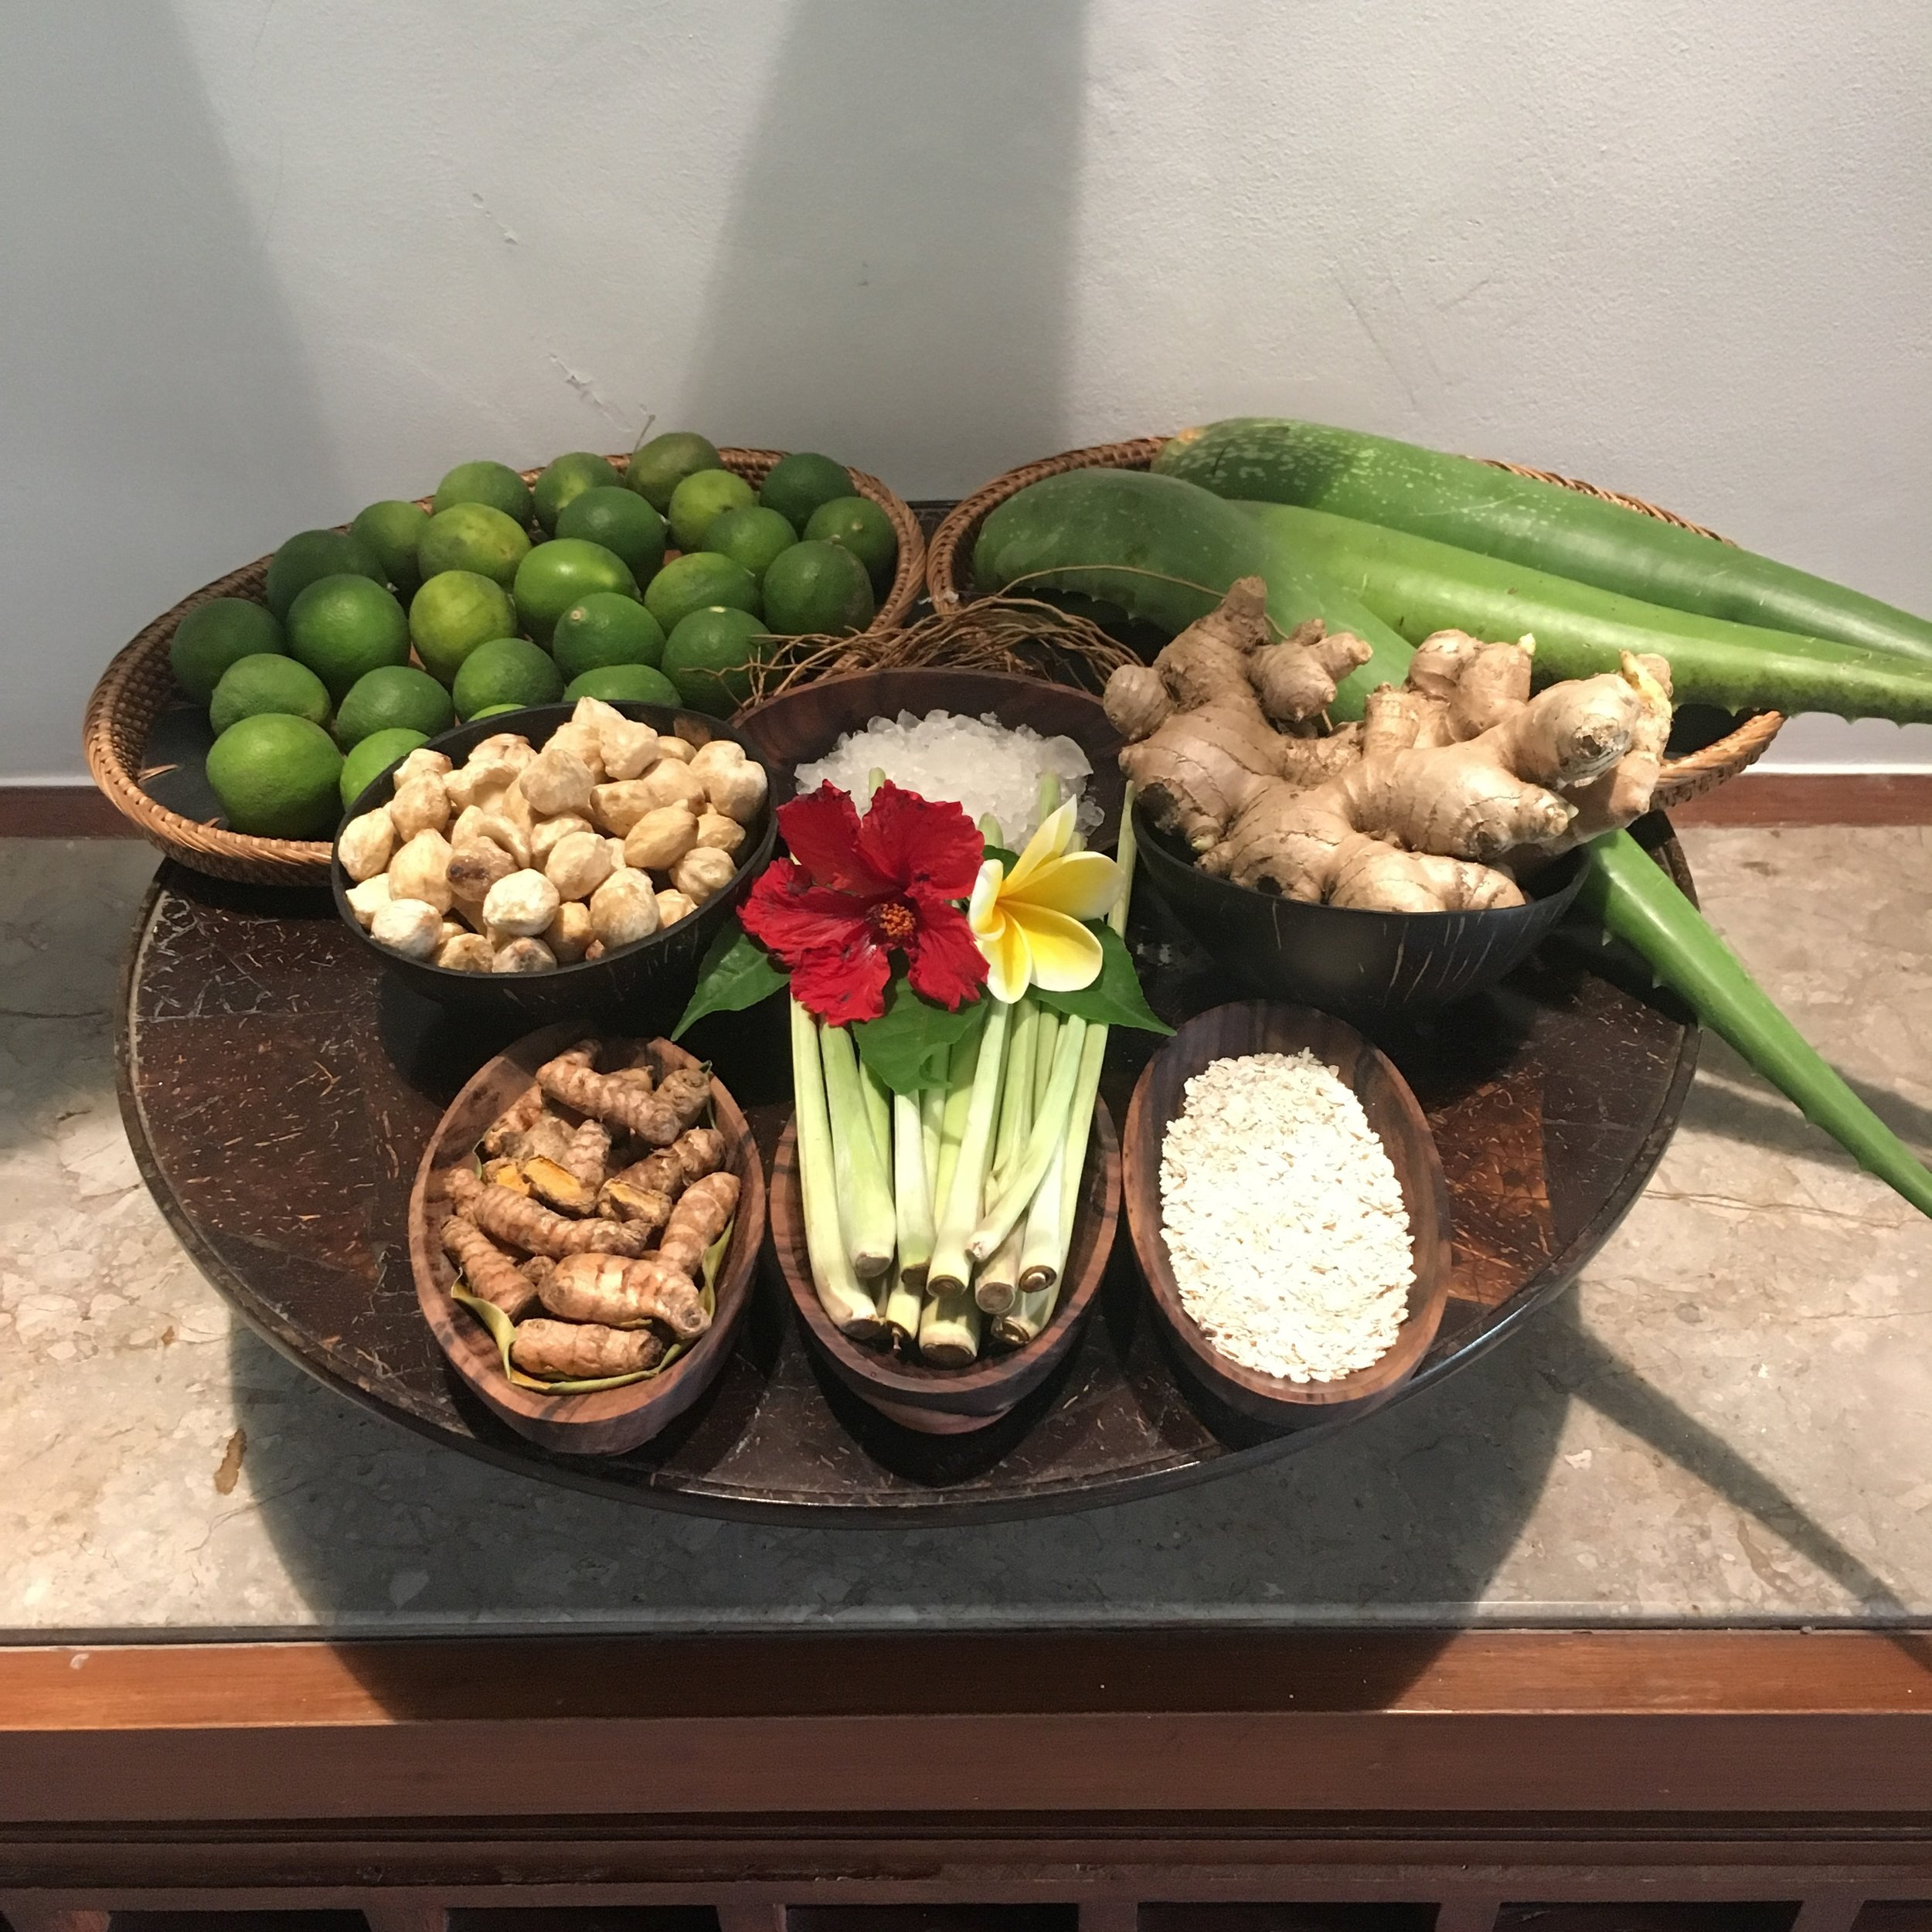 Limes, ginger, lemongrass, salt... some of the ingredients used in the spa treatments